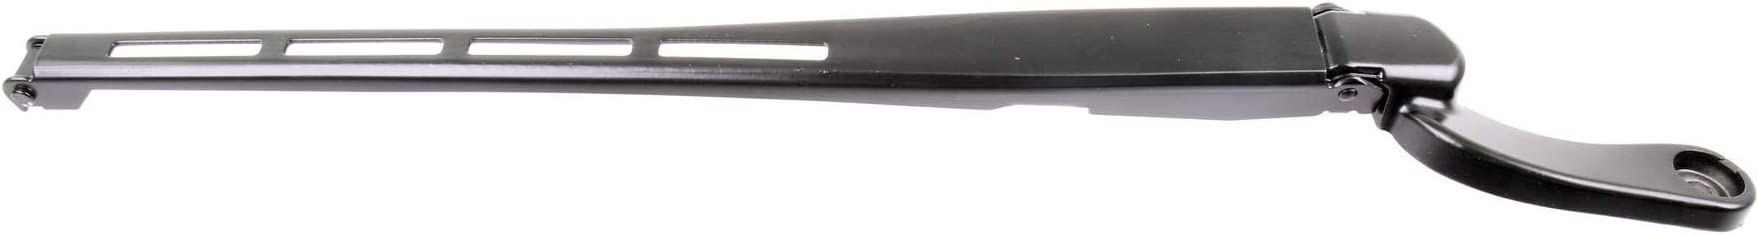 Windshield Wiper Arm Washer Front Left Fits AUDI A6 Avant Allroad 1997-2005